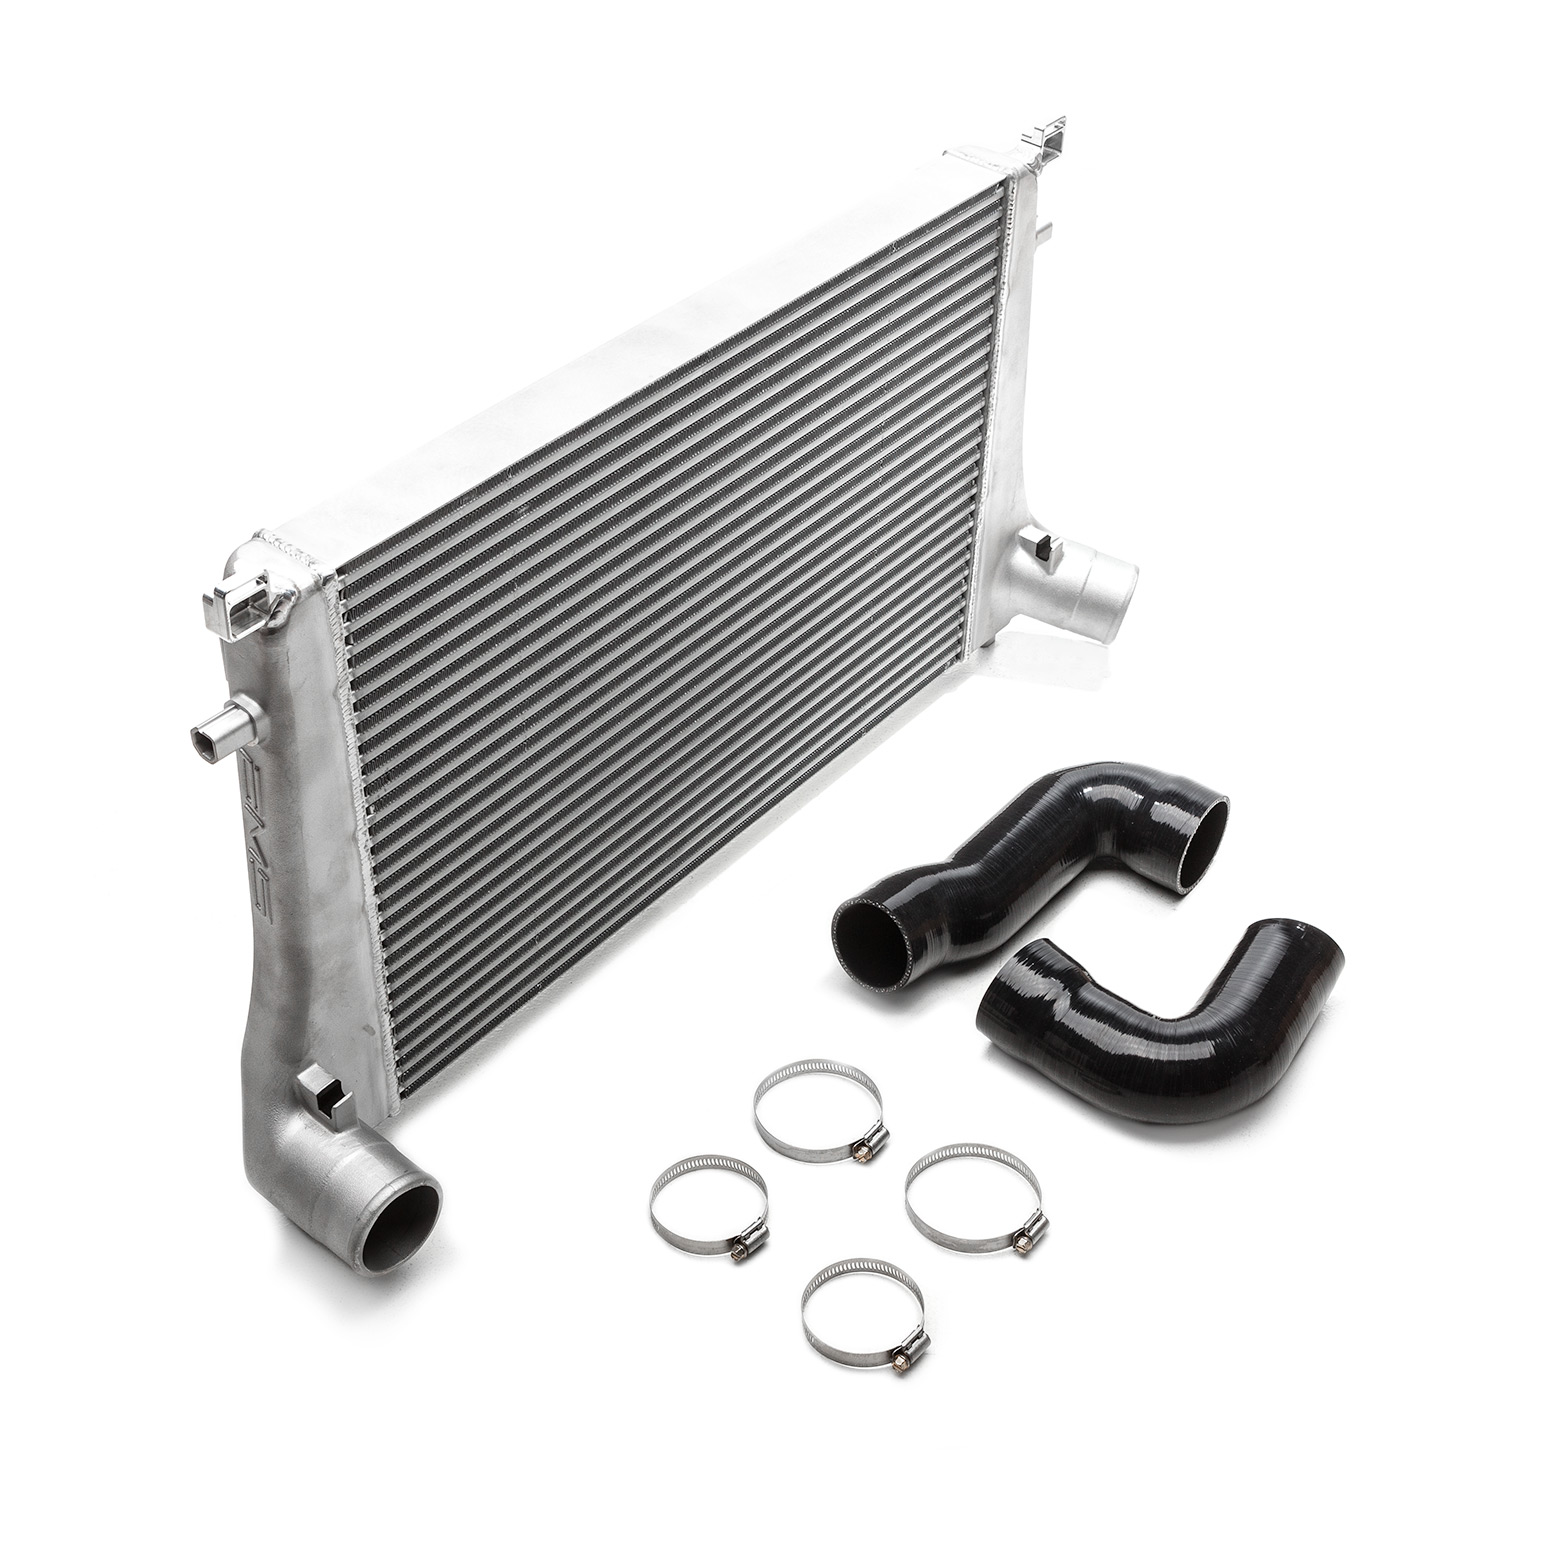 AMS Performance Front Mount Intercooler for VW GTI, Golf R, GLI, Audi S3, A3